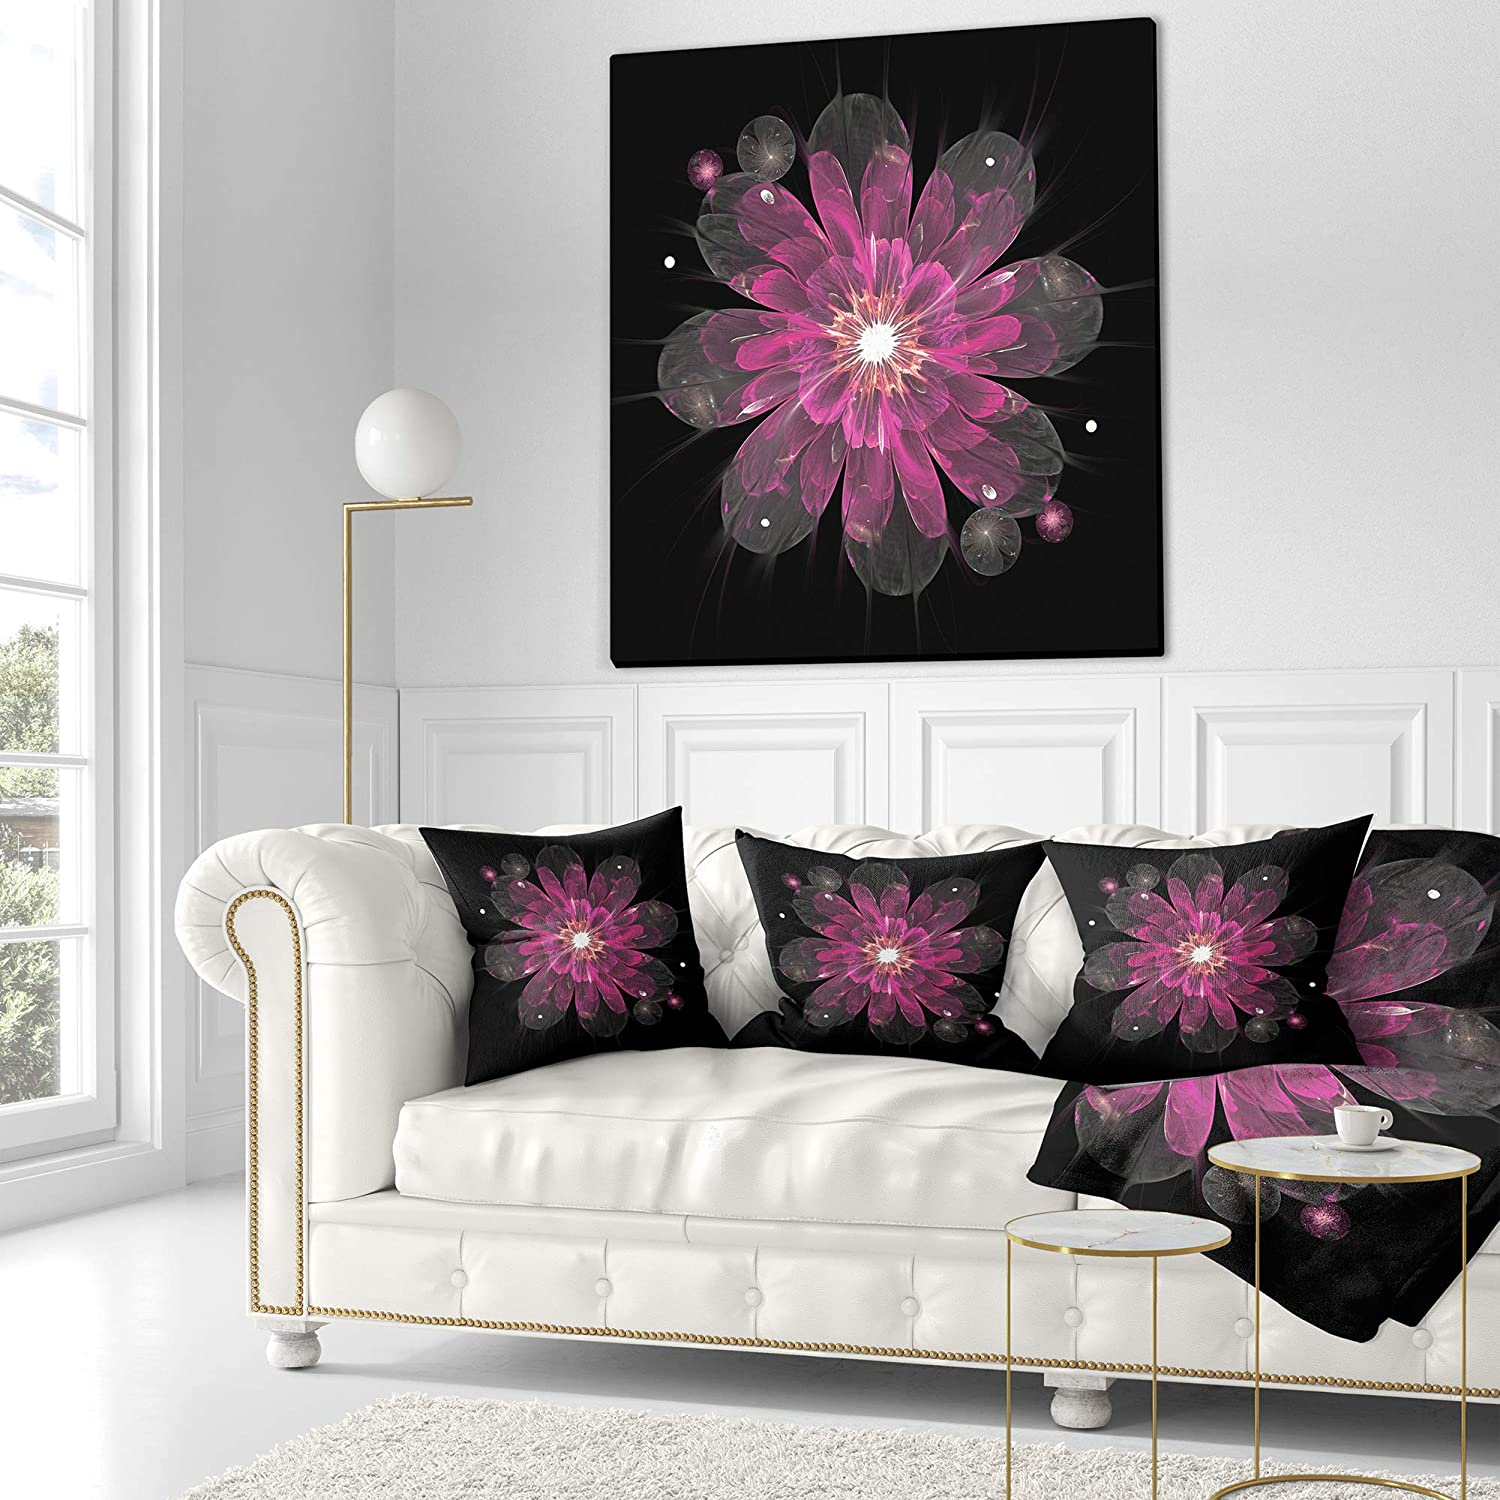 Designart Cu12176 26 26 Shiny Light Pink Fractal Flower On Black Floral Cushion Cover For Living Room Sofa Throw Pillow 26 X 26 Home Kitchen Decorative Pillows Inserts Covers